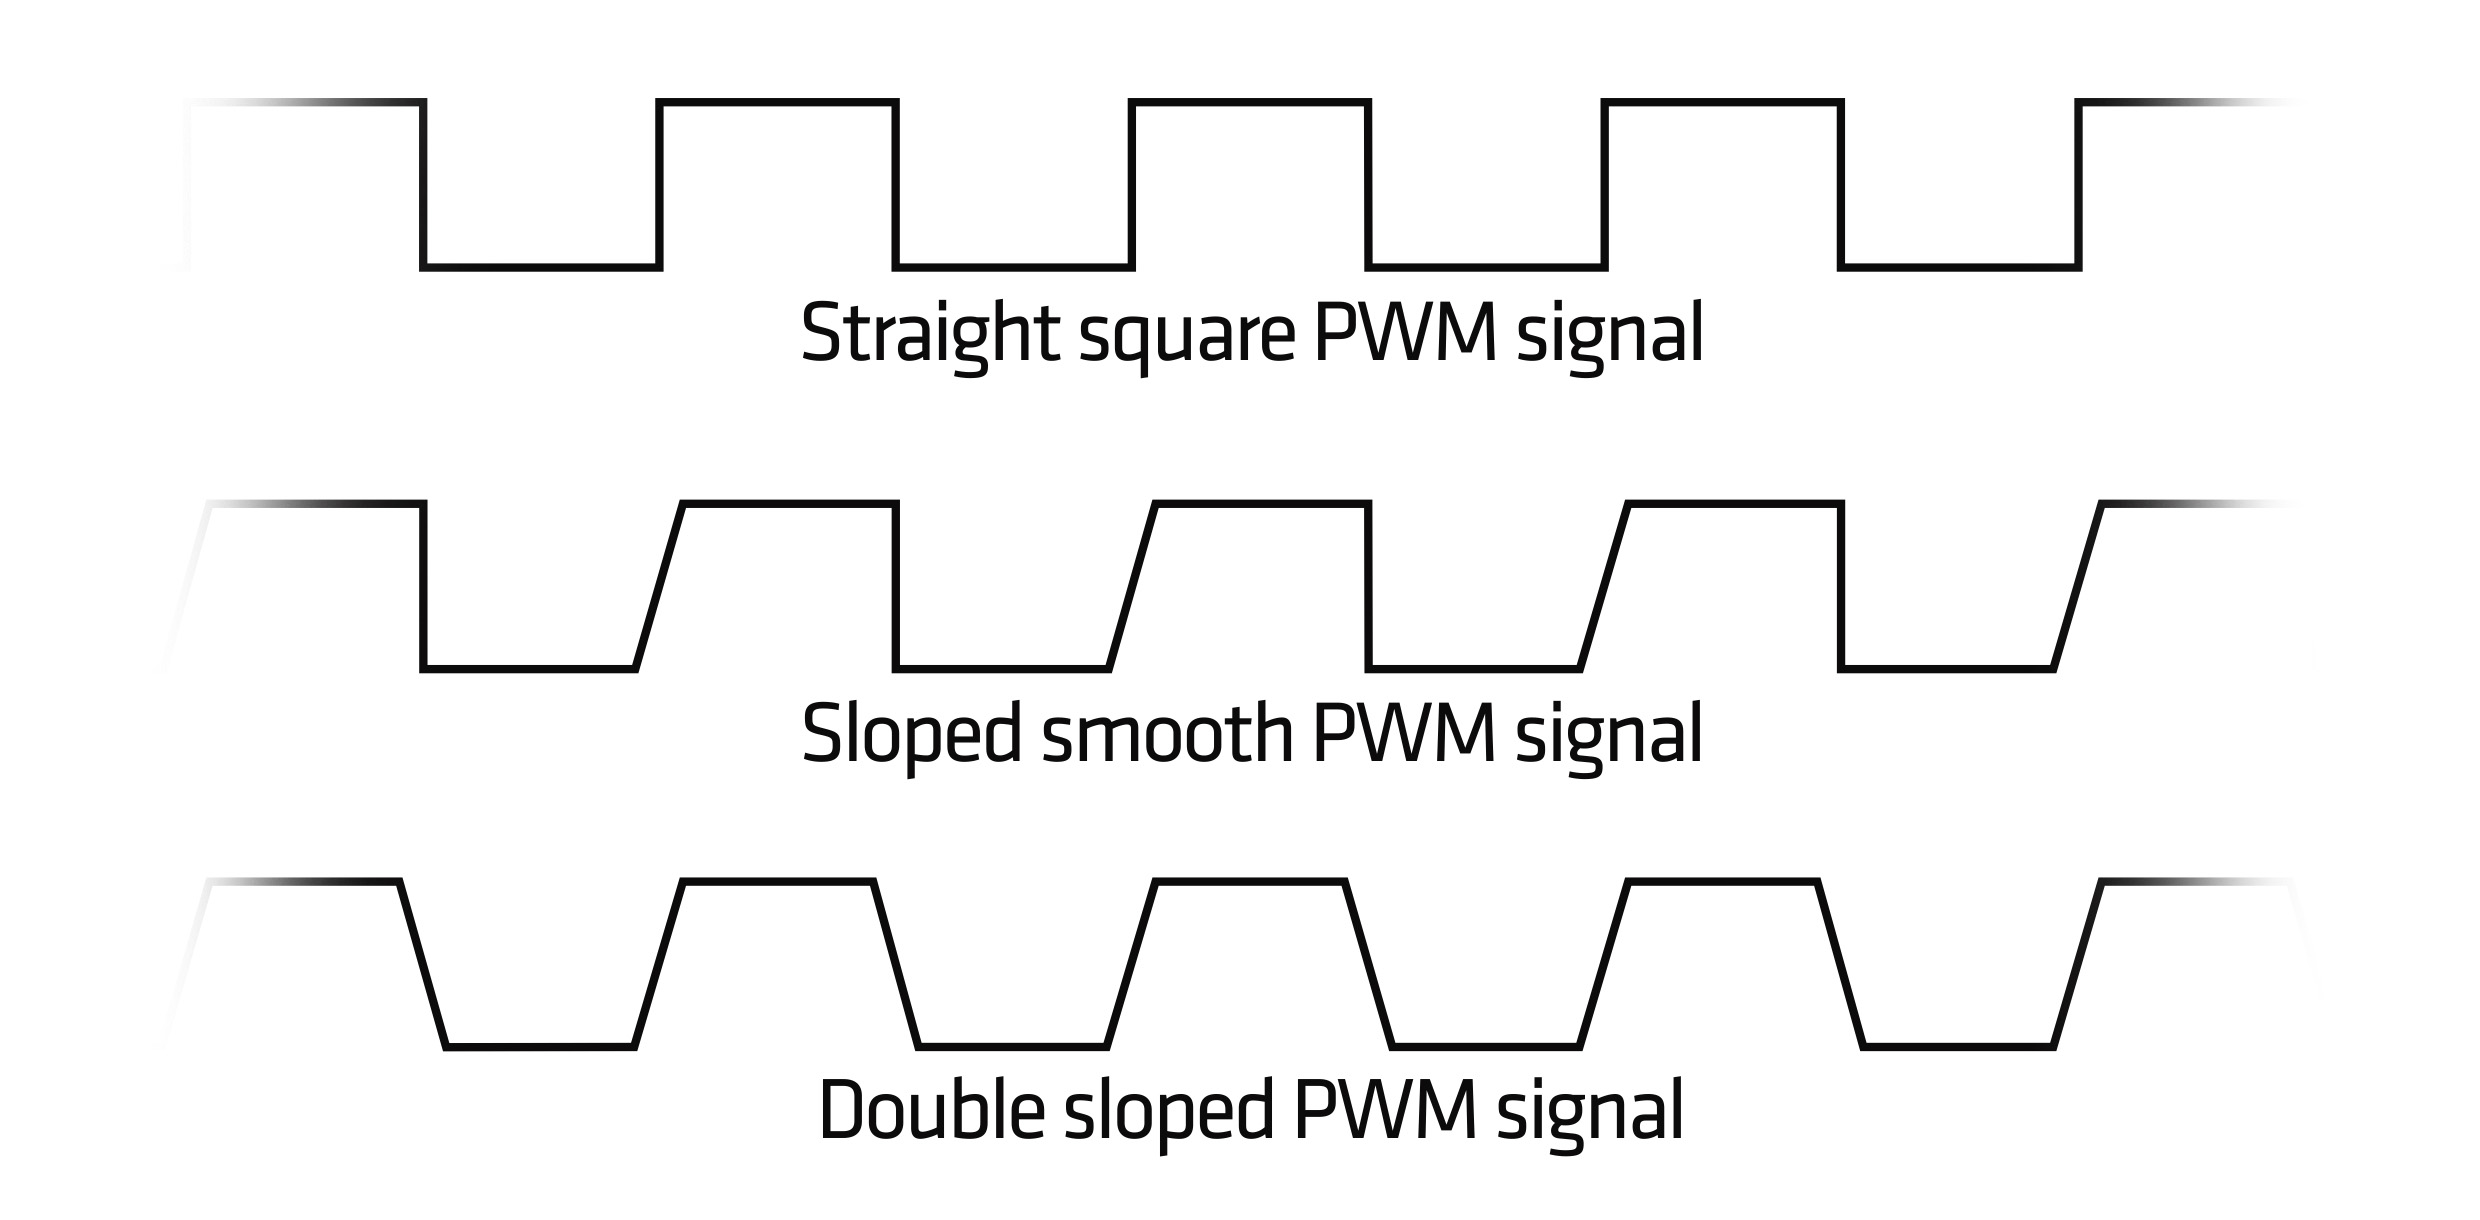 What Is Pwm And How Does It Work Laptop Fan Wiring Diagram Well Almost All Fans Die If The Voltage Lowered Under 5v But With Control Can Reach Really Low Operation Speeds Of 300 600 Rpm